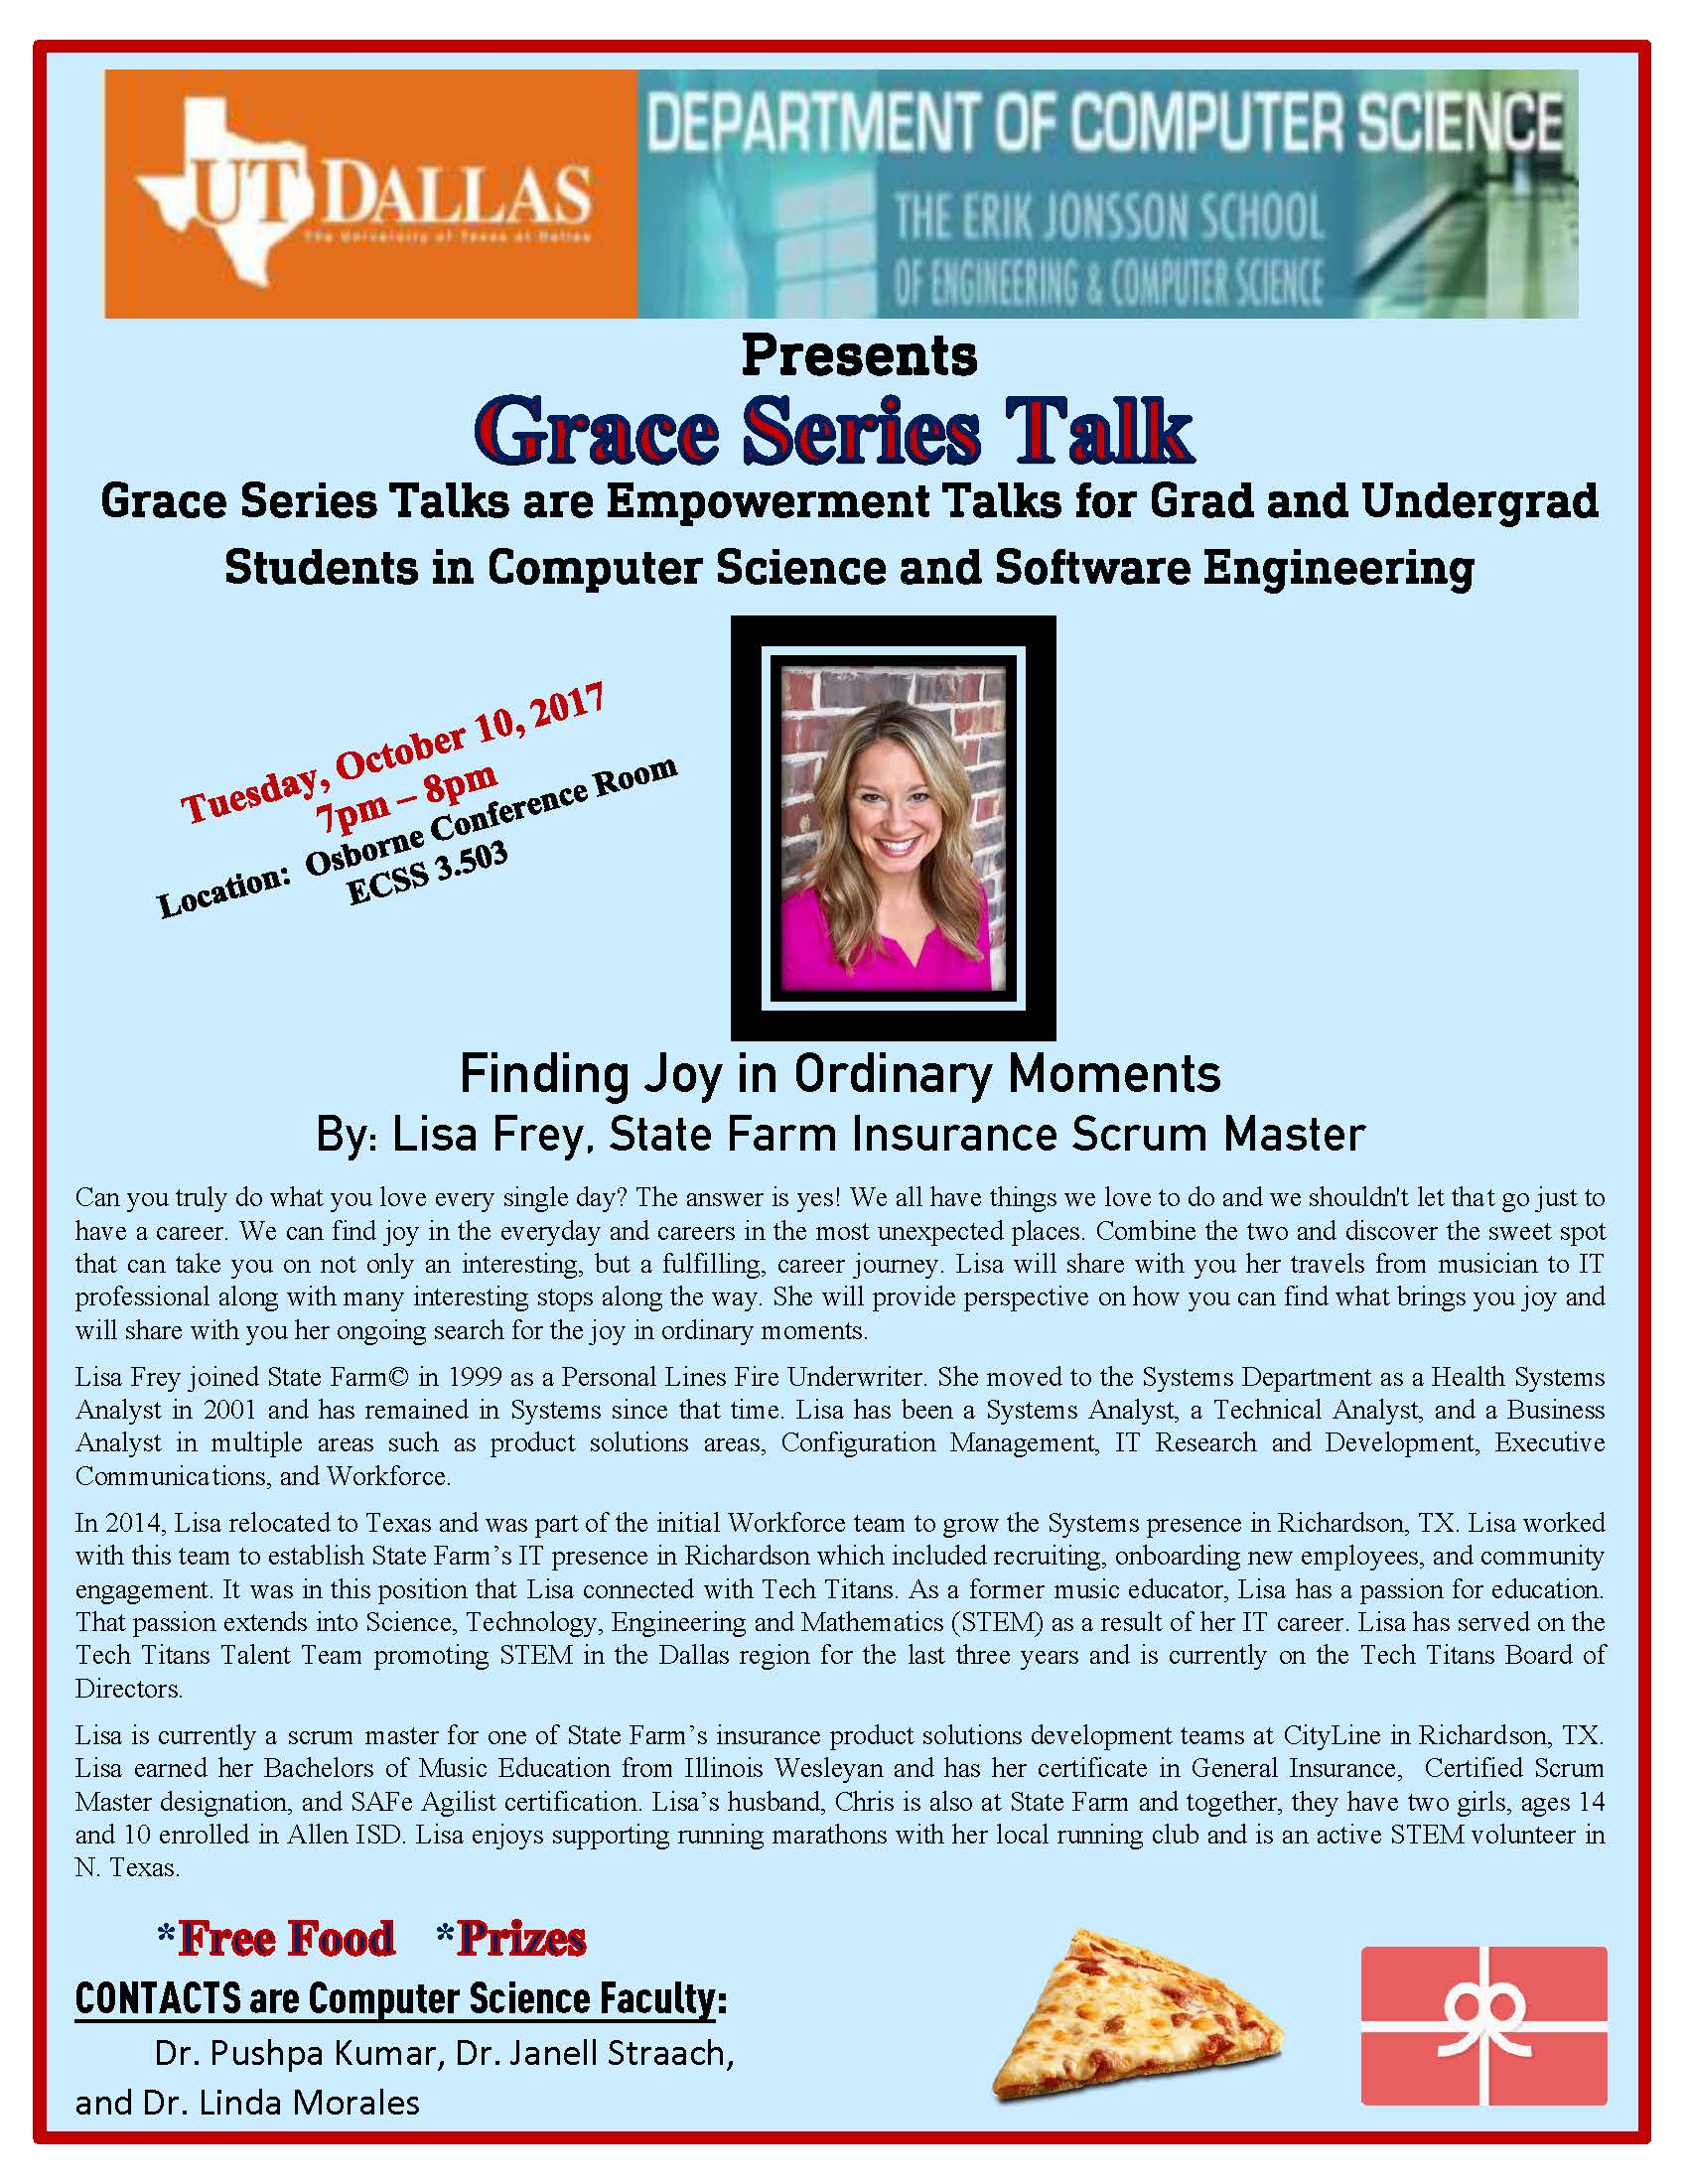 CS Grace Series presents Ms. Lisa Frey, State Farm Scrum Master @ ECSS 3.501 (Osborne Conference Room)